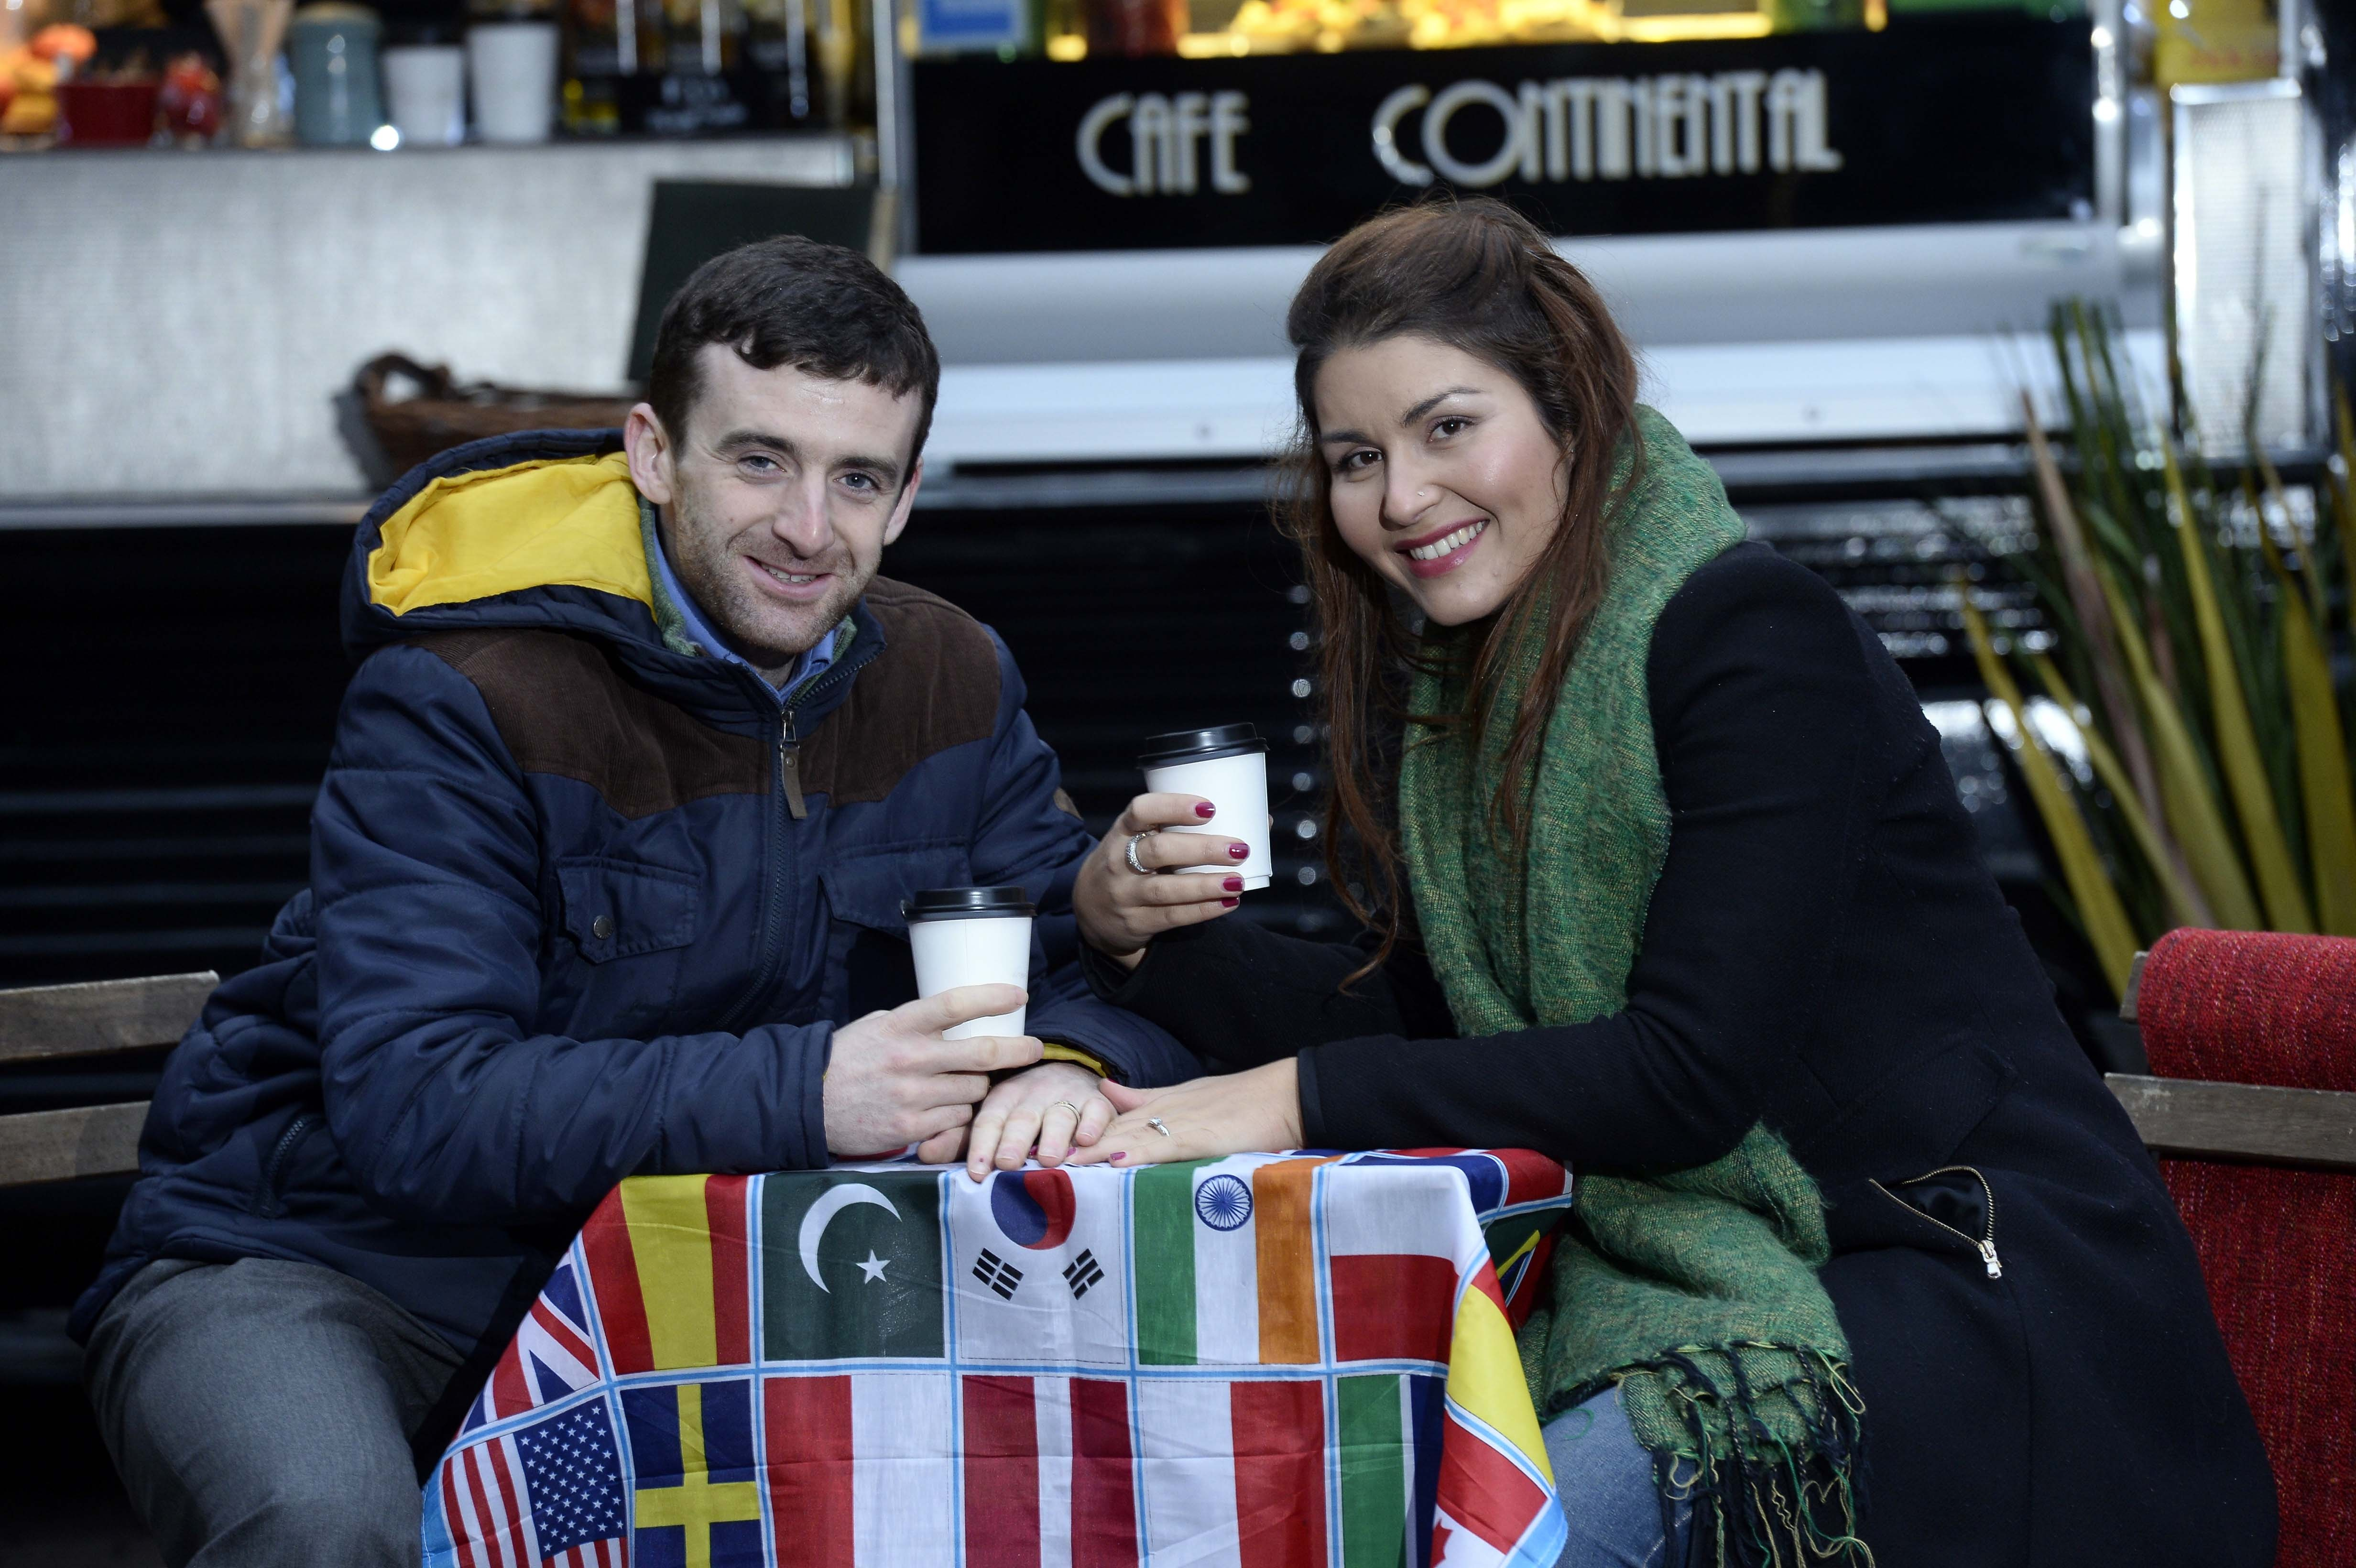 Raquel Rodrigues Keenan and her husband Conor, sharing a coffee together abroad